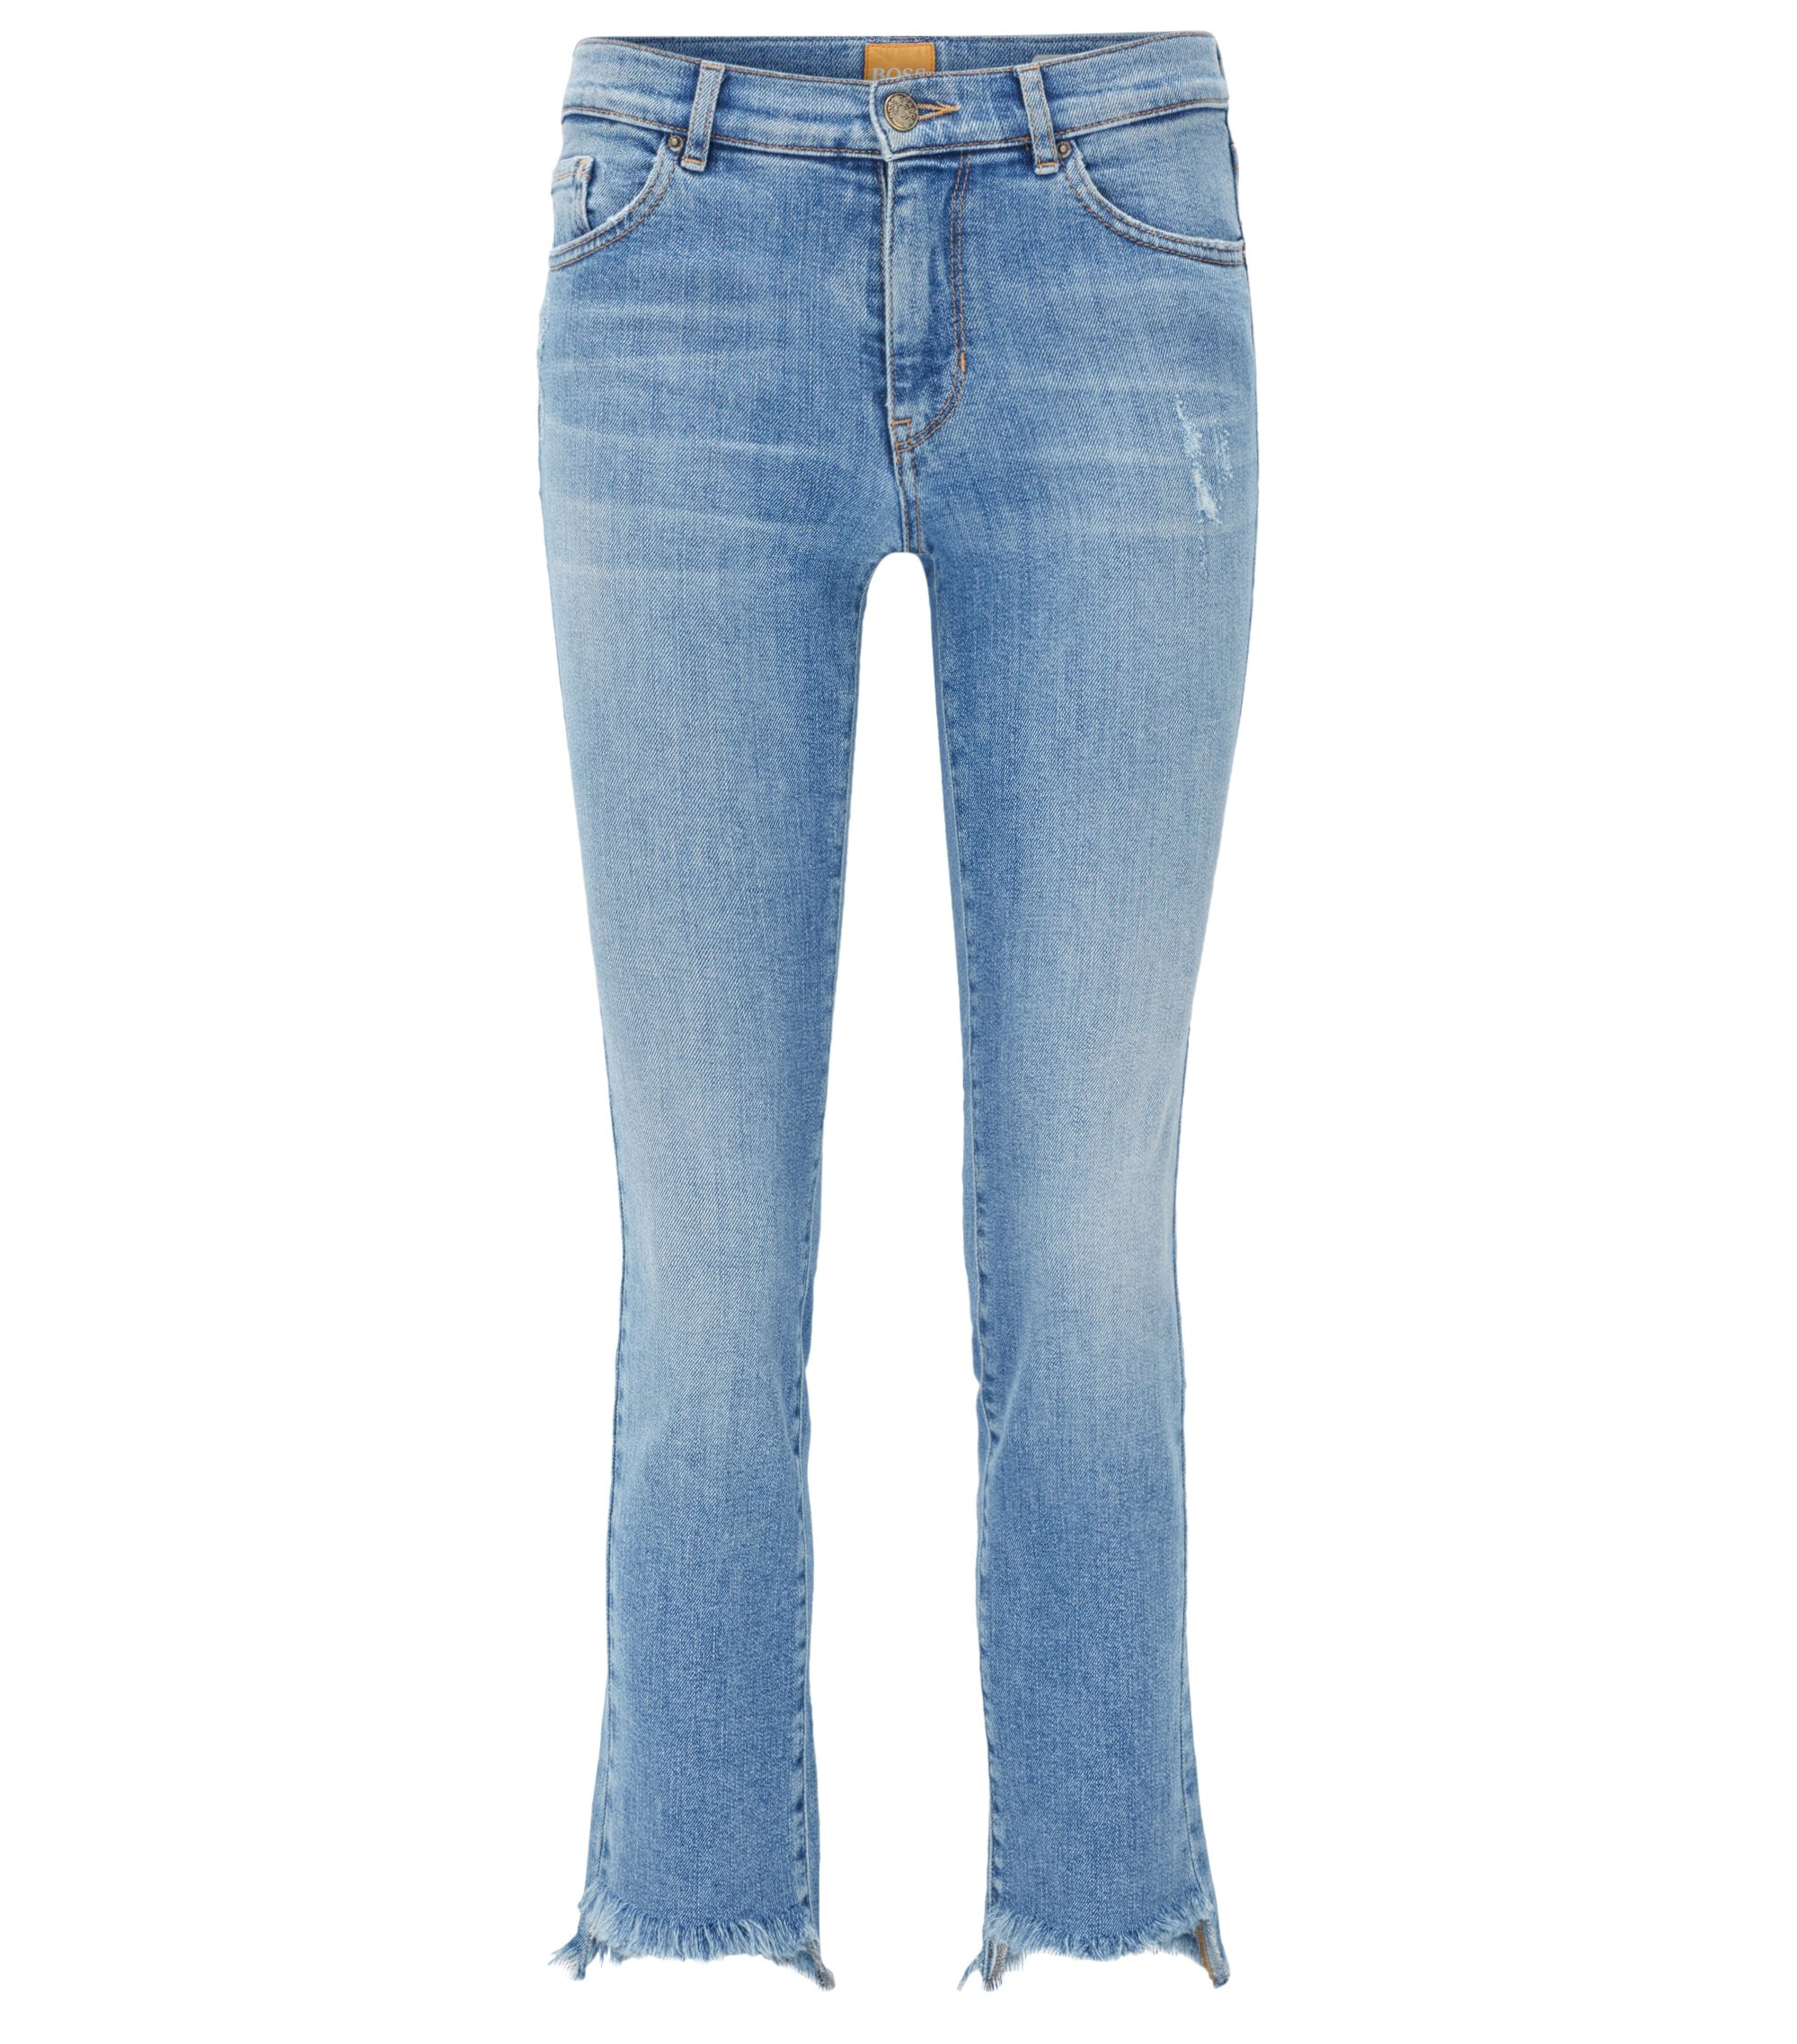 Slim-Fit Jeans in Cropped-Länge aus Stretch Denim mit offenem Saum, Blau